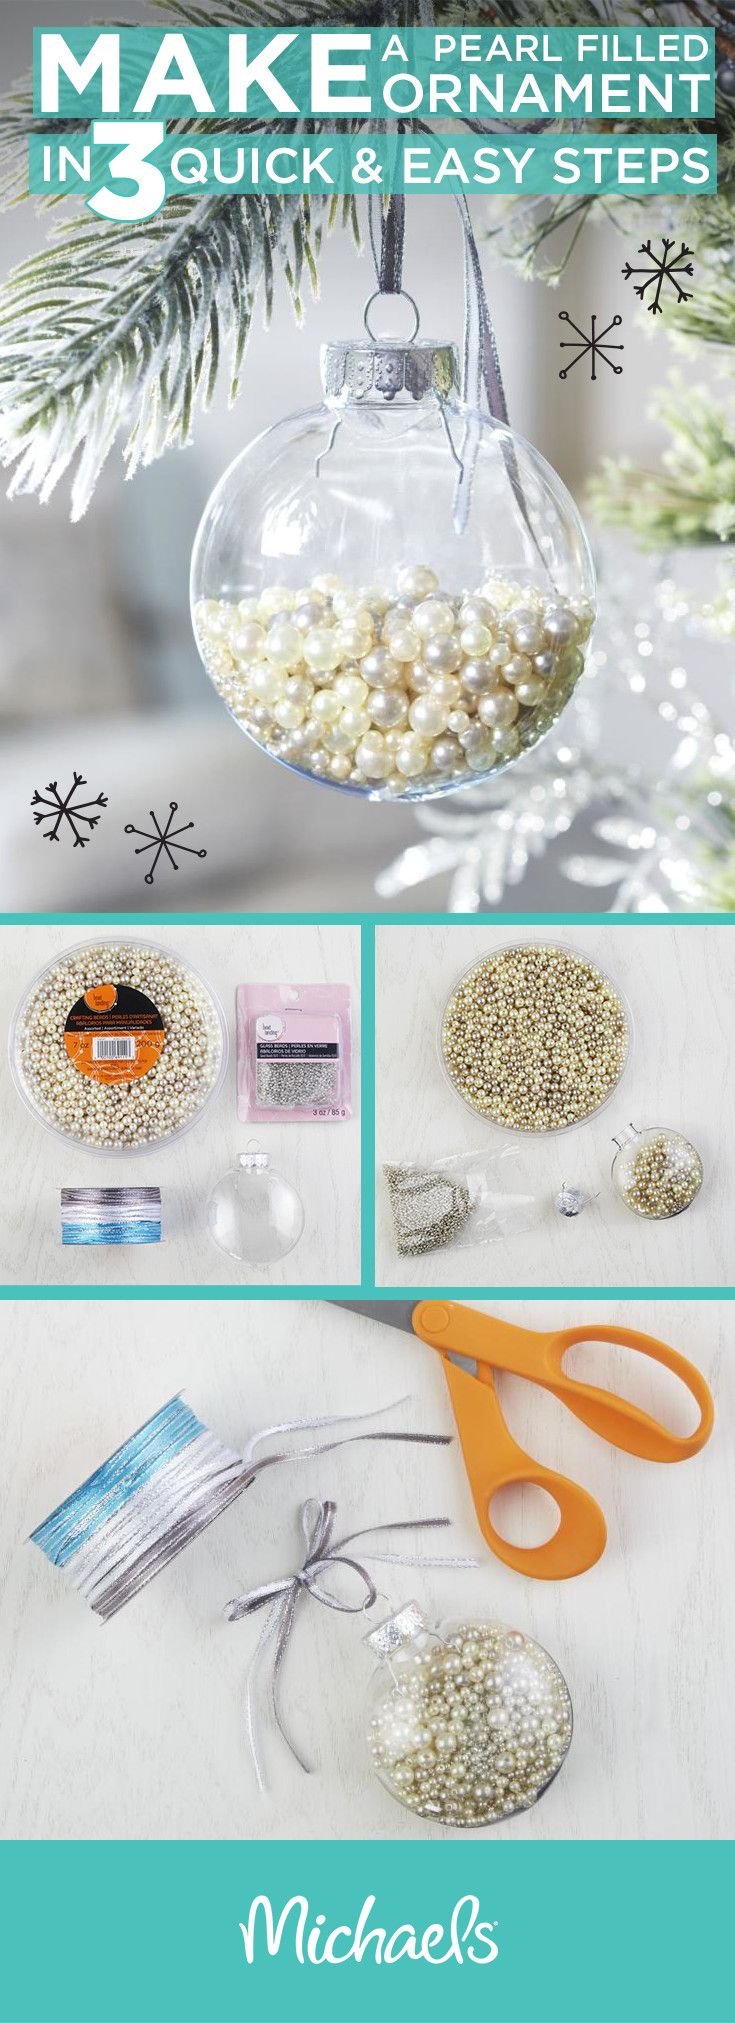 Make a pearl filled ornament in 3 quick and easy steps! First, gather your supplies. Open your clear ornament and fill it with loose pearls. Replace the top of the ornament and tie on ribbon to match your tree. For more holiday ideas and inspiration, visit Michaels.com